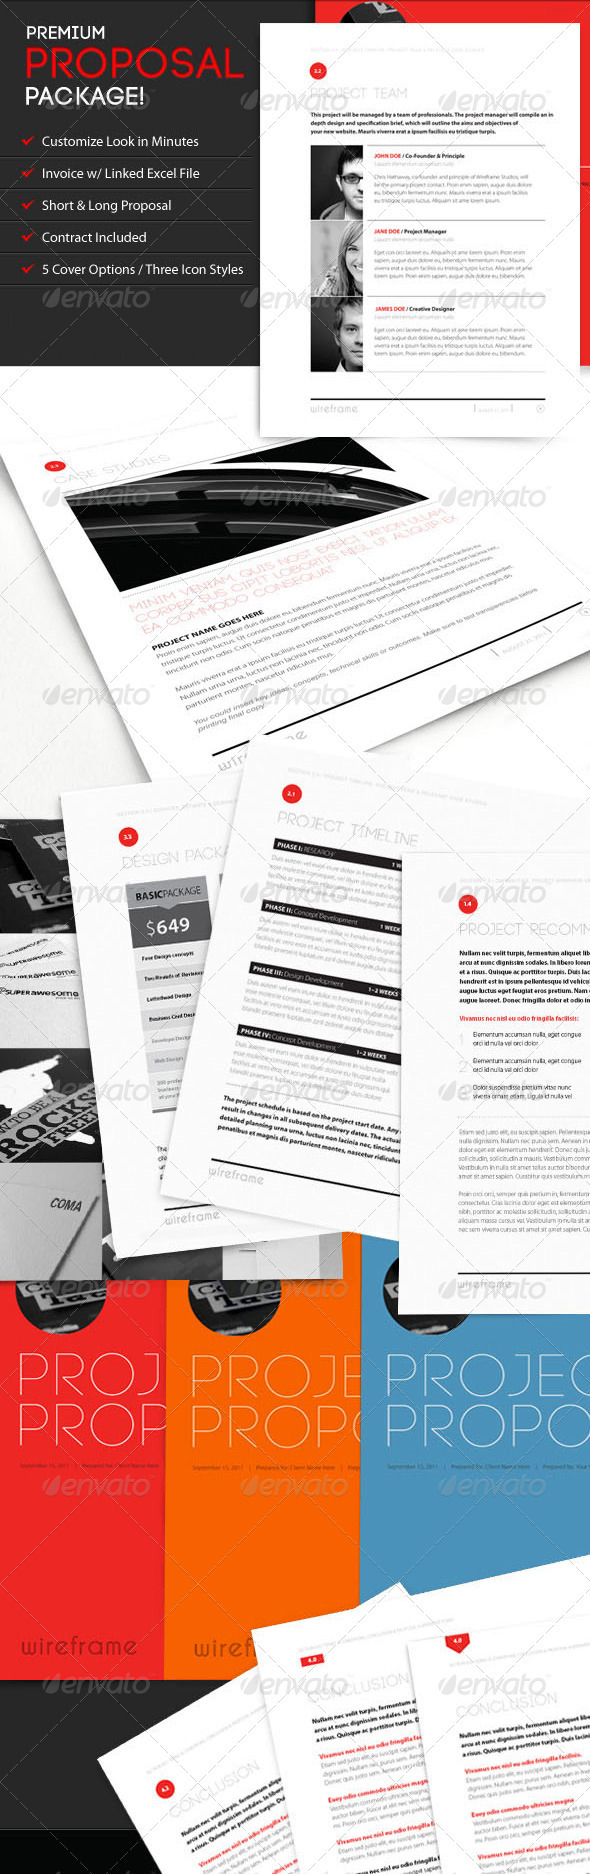 Project Proposal Template Bundle w/ Invoice & Contract - Proposals & Invoices Stationery